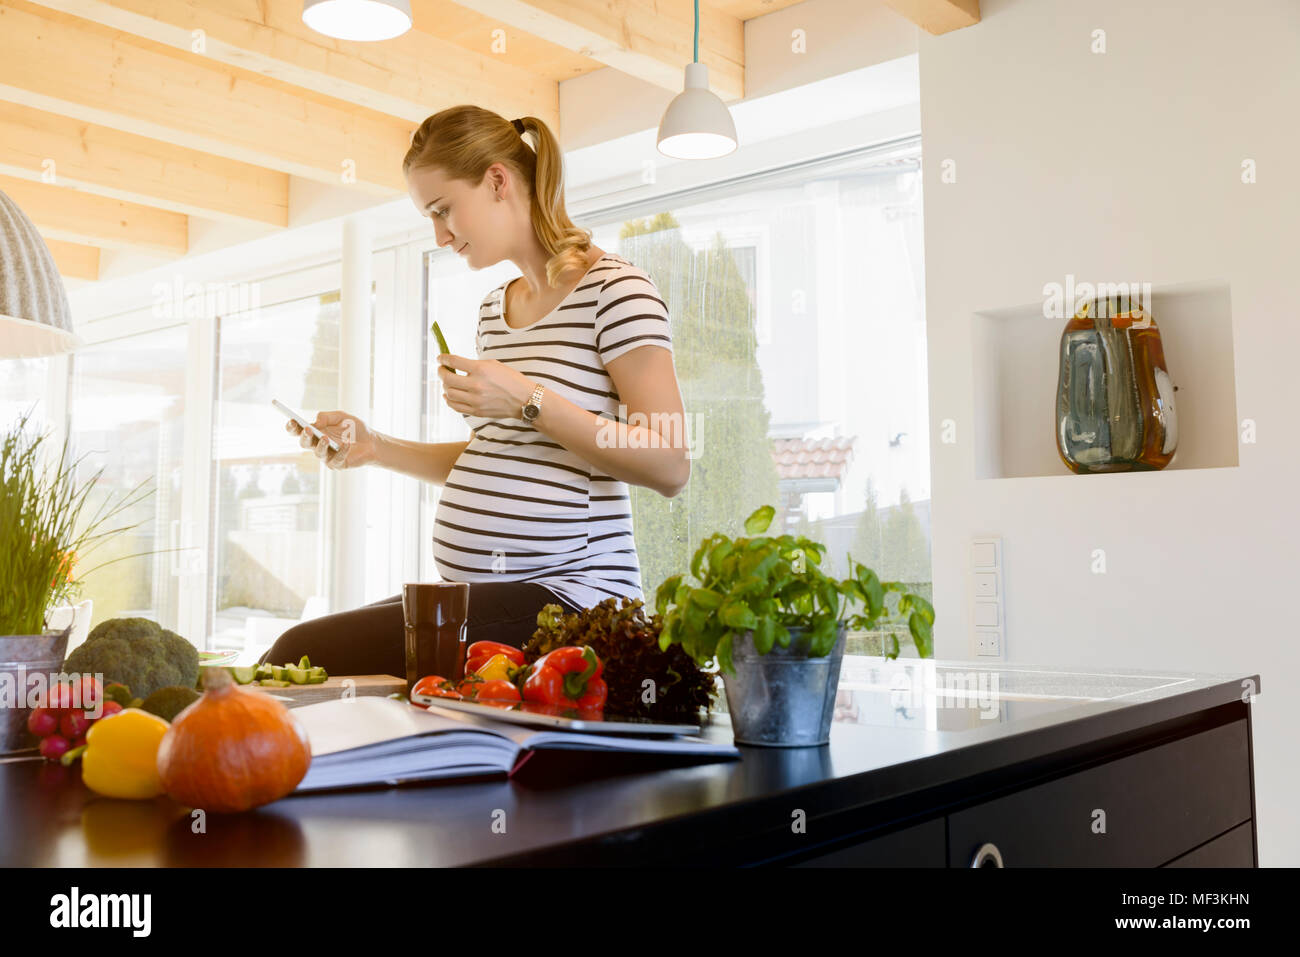 Pregnant woman in kitchen at home using cell phone - Stock Image